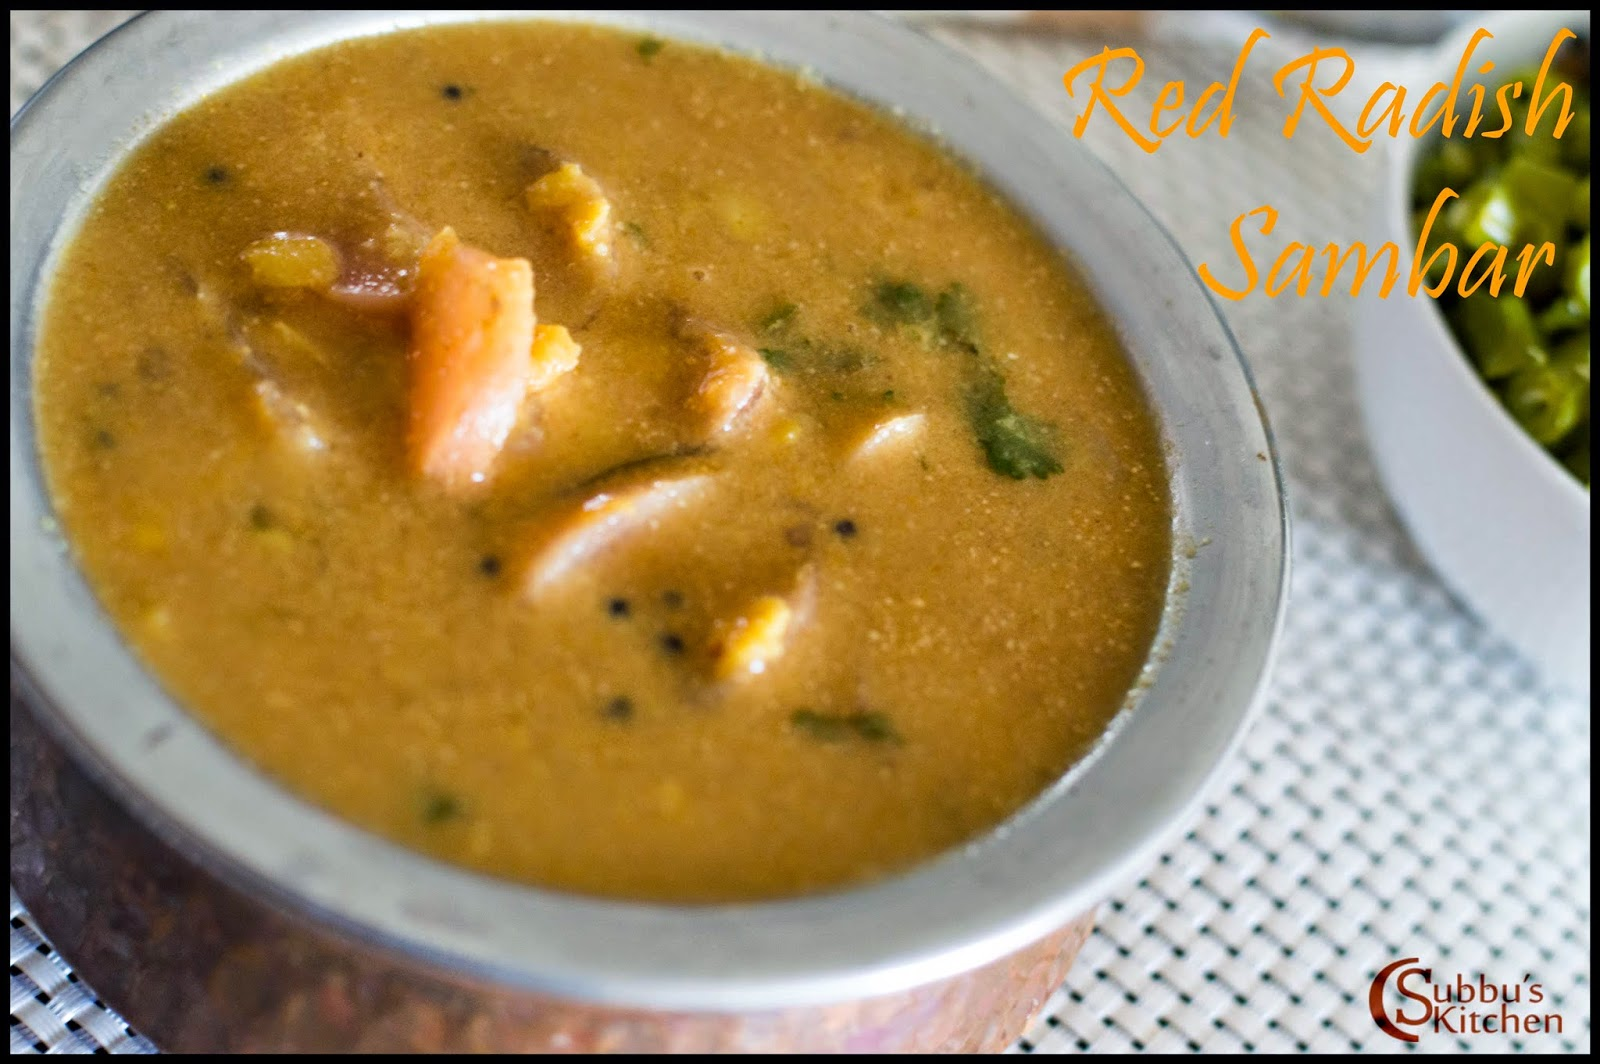 Red Radish Sambar Recipe